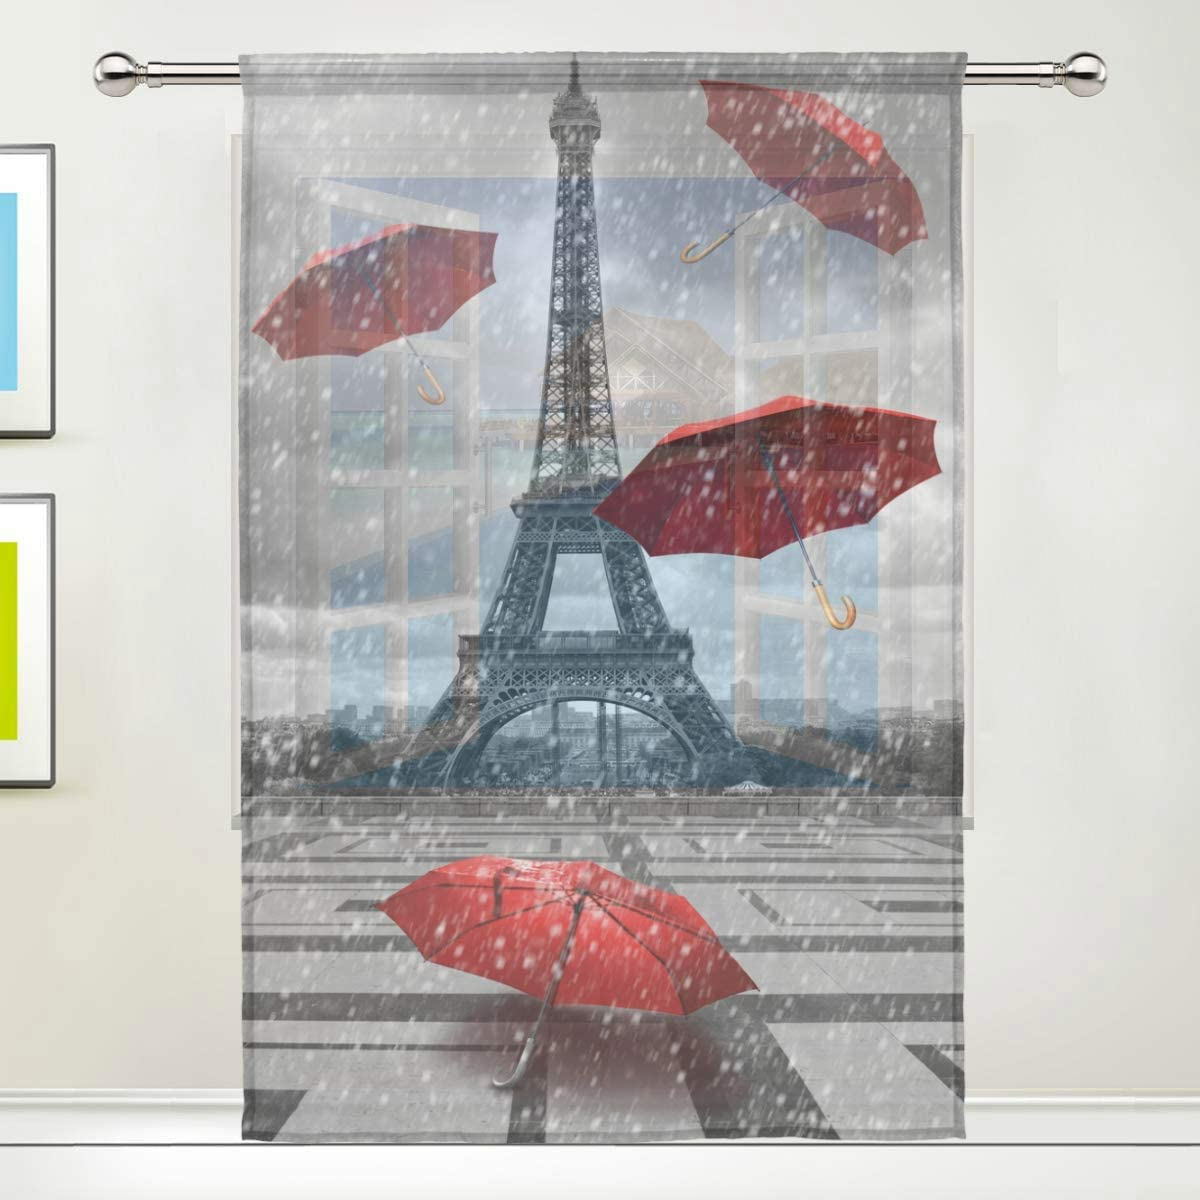 MAHU Sheer Curtains Paris Eiffel Tower Umbrella Window Voile Curtain Drapes for Living Room Bedroom Kitchen Home Decor 55x84 inches, 1 Panel